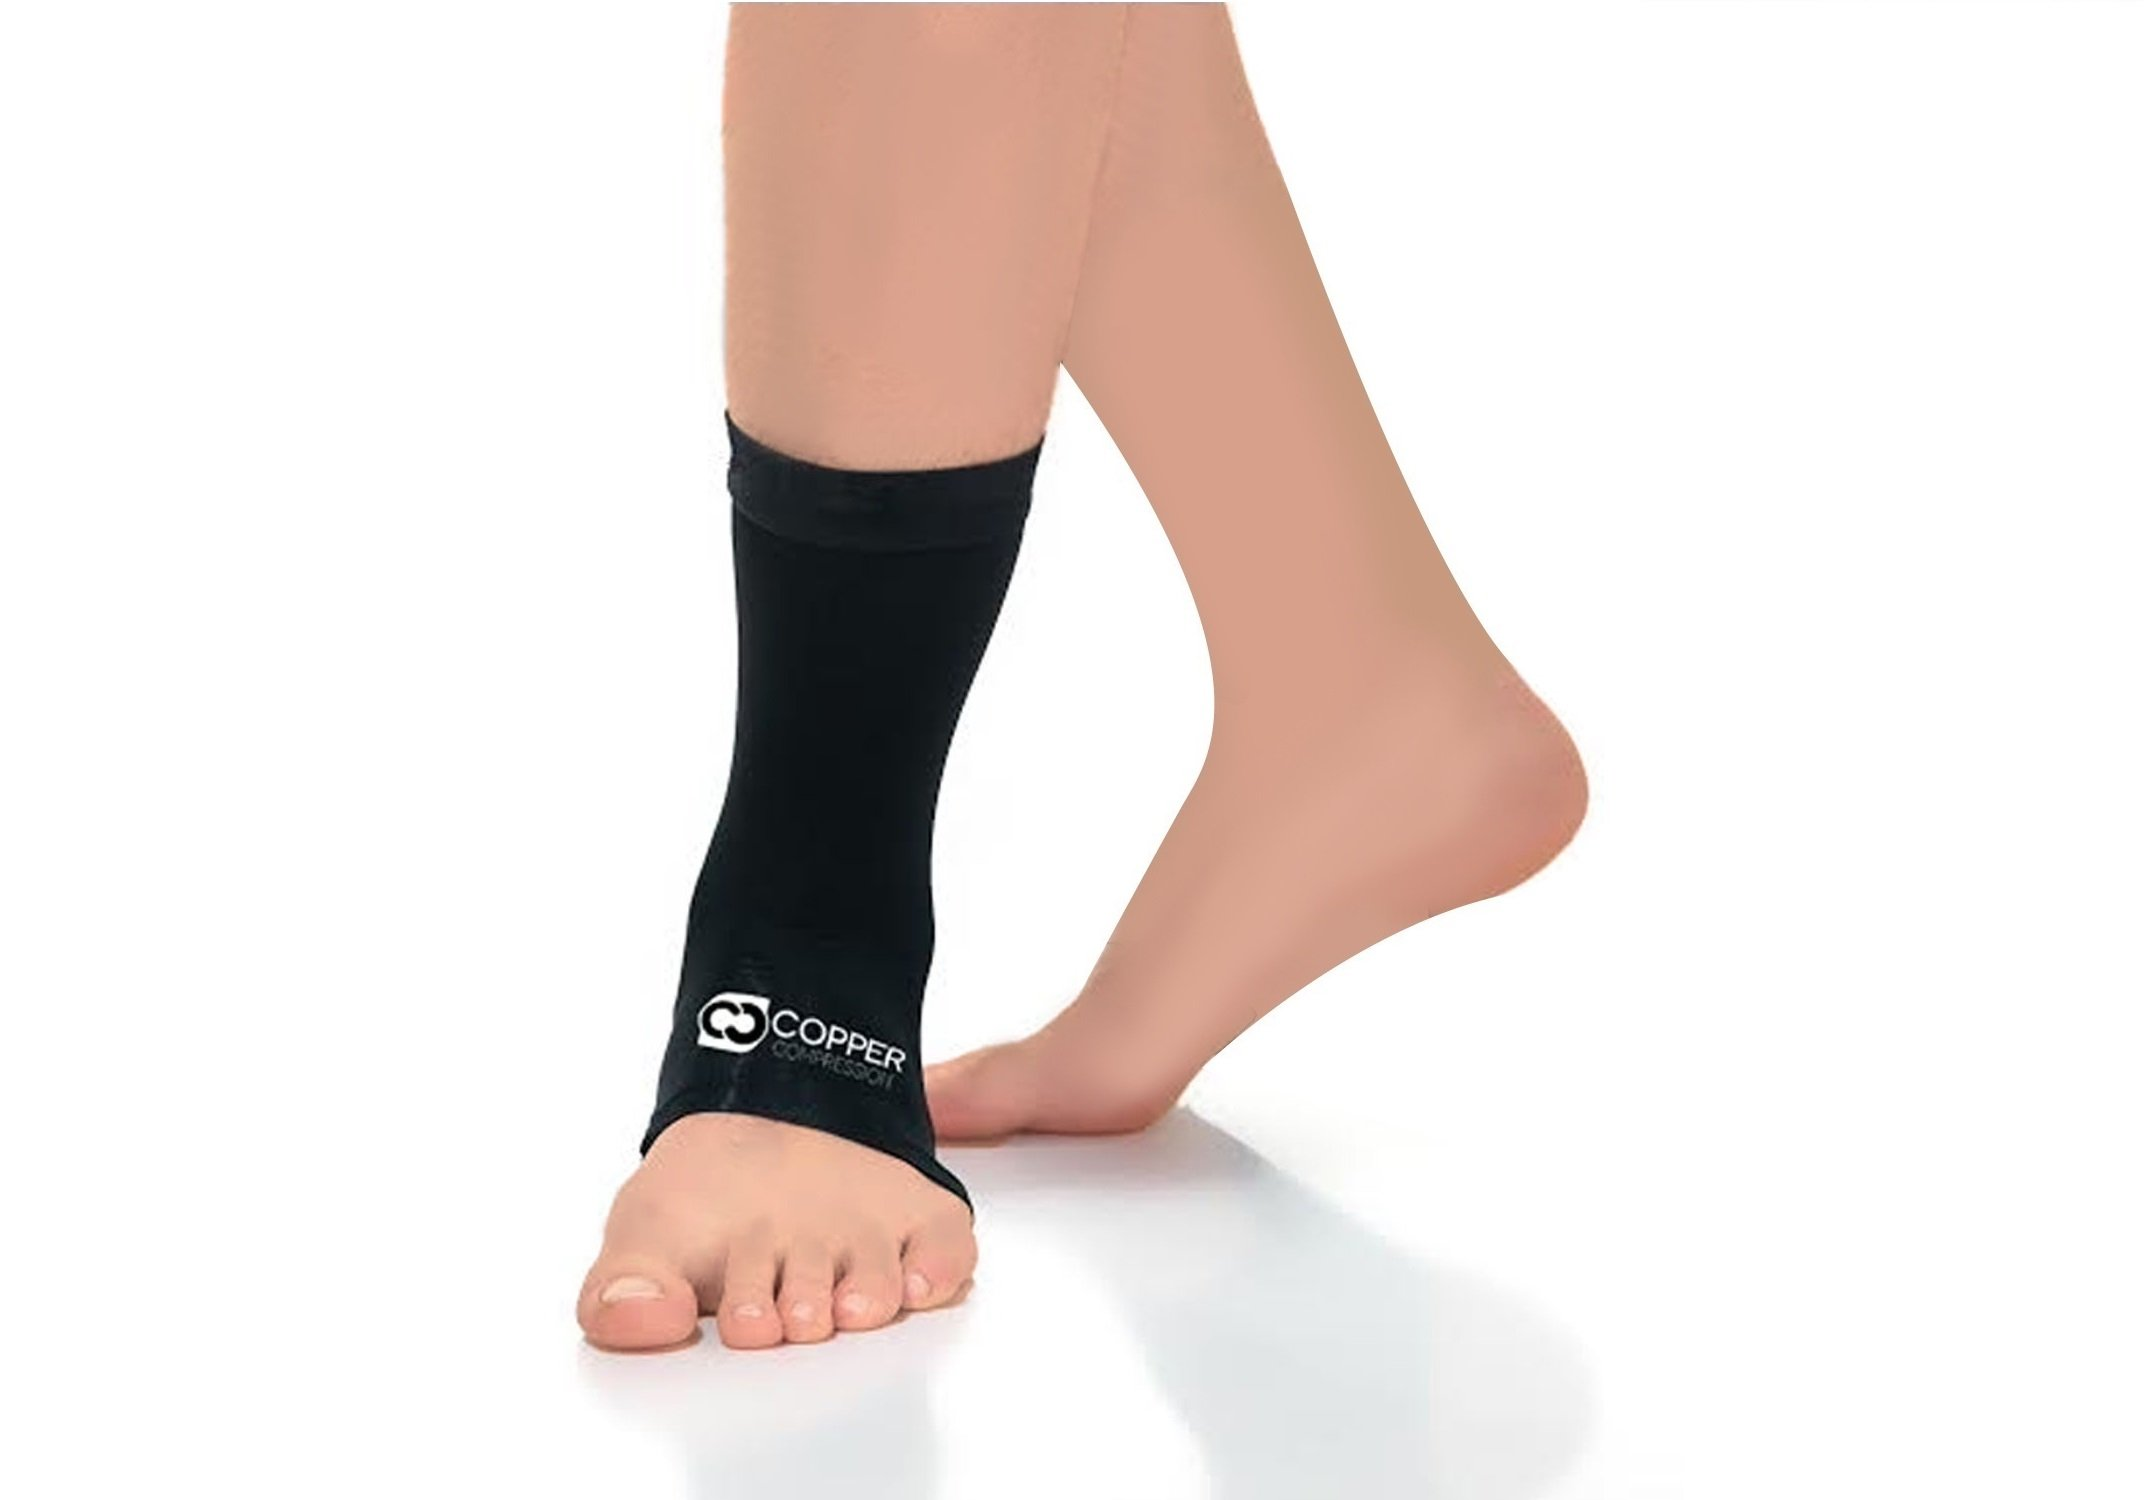 Copper Compression Recovery Ankle Sleeve - GUARANTEED Highest Copper Content #1 Infused Fit Ankle Brace/Wrap/Sock/Stabilizer For Men And Women. Wear To Support Stiff And Sore Muscles And Joints